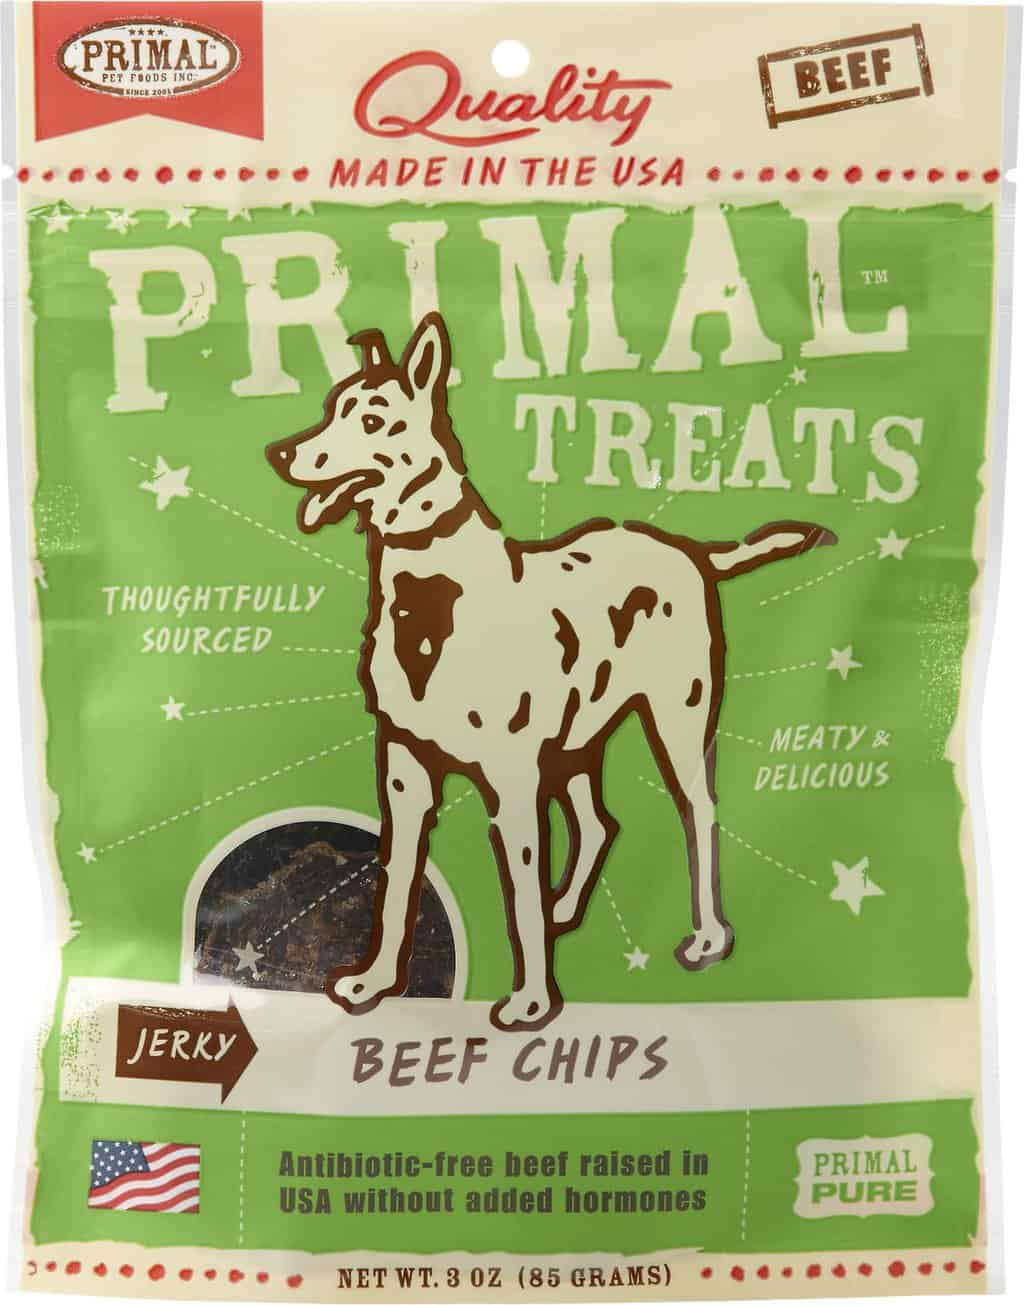 Primal Dog Food: 2020 Reviews, Recalls & Coupons 17